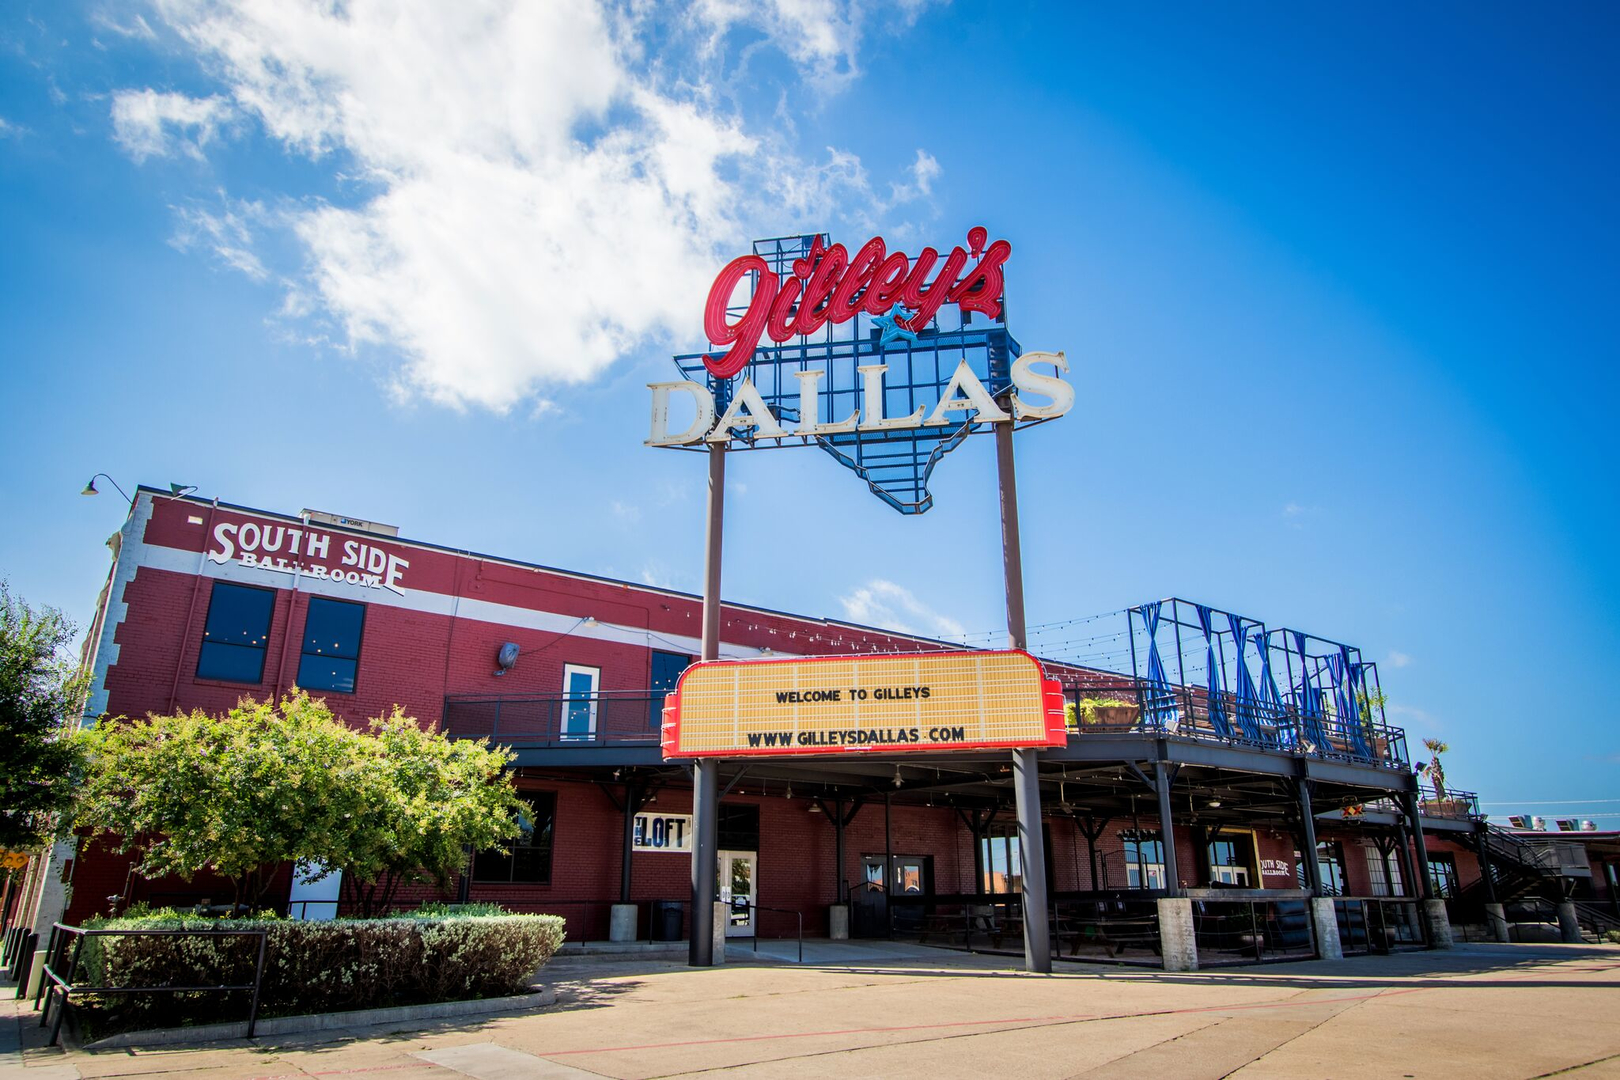 Gilley's indoor meeting space is located on the second floor, along with an outdoor patio just below their marquee sign.